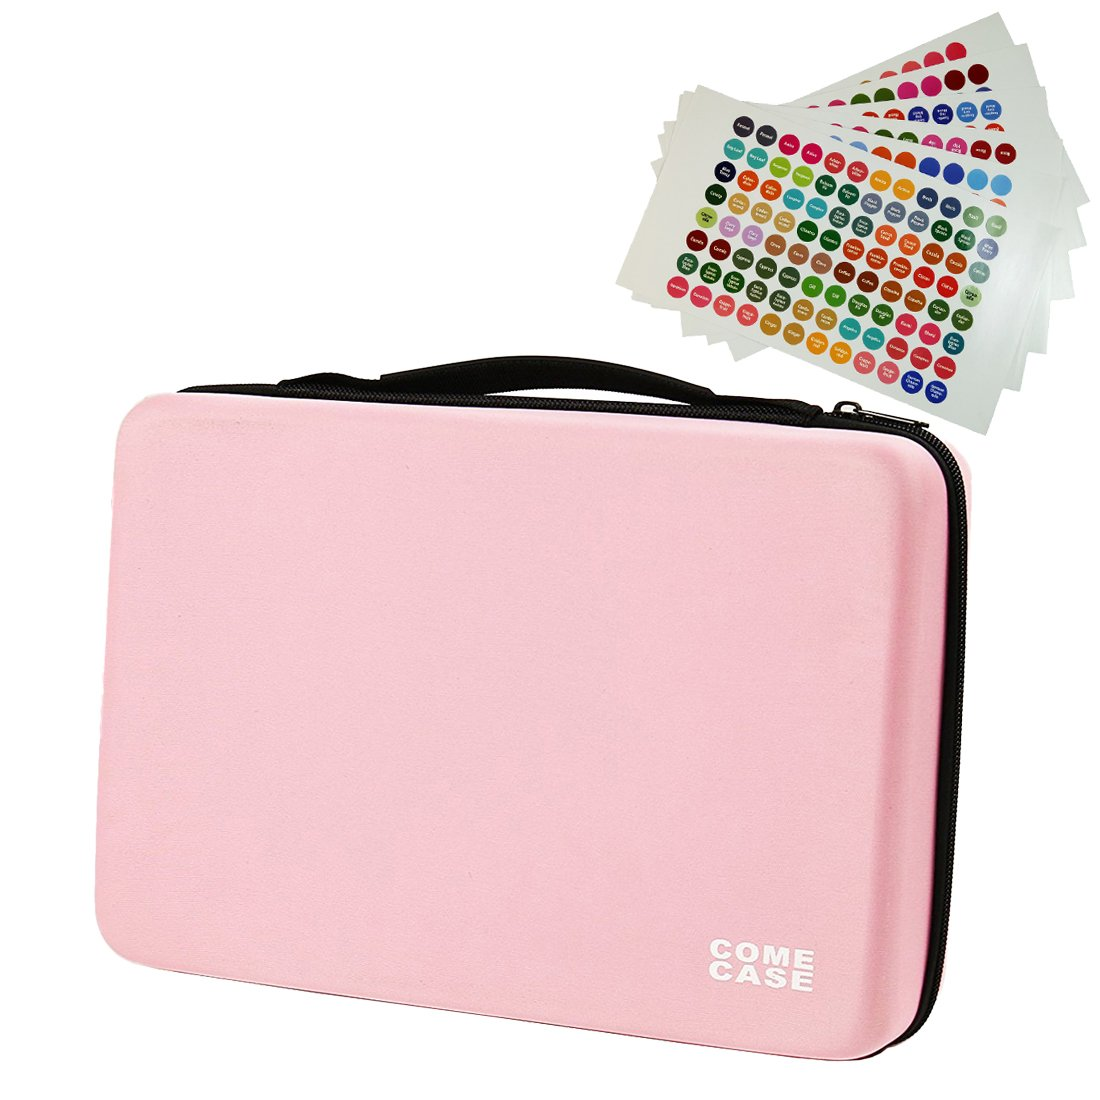 COMECASE 70 Essential Oil Carrying Case Includes Cap Labels. Holds 5ml 10ml 15ml Bottles with Hard Shell Exterior and Foam Insert Perfect for Travel Pink